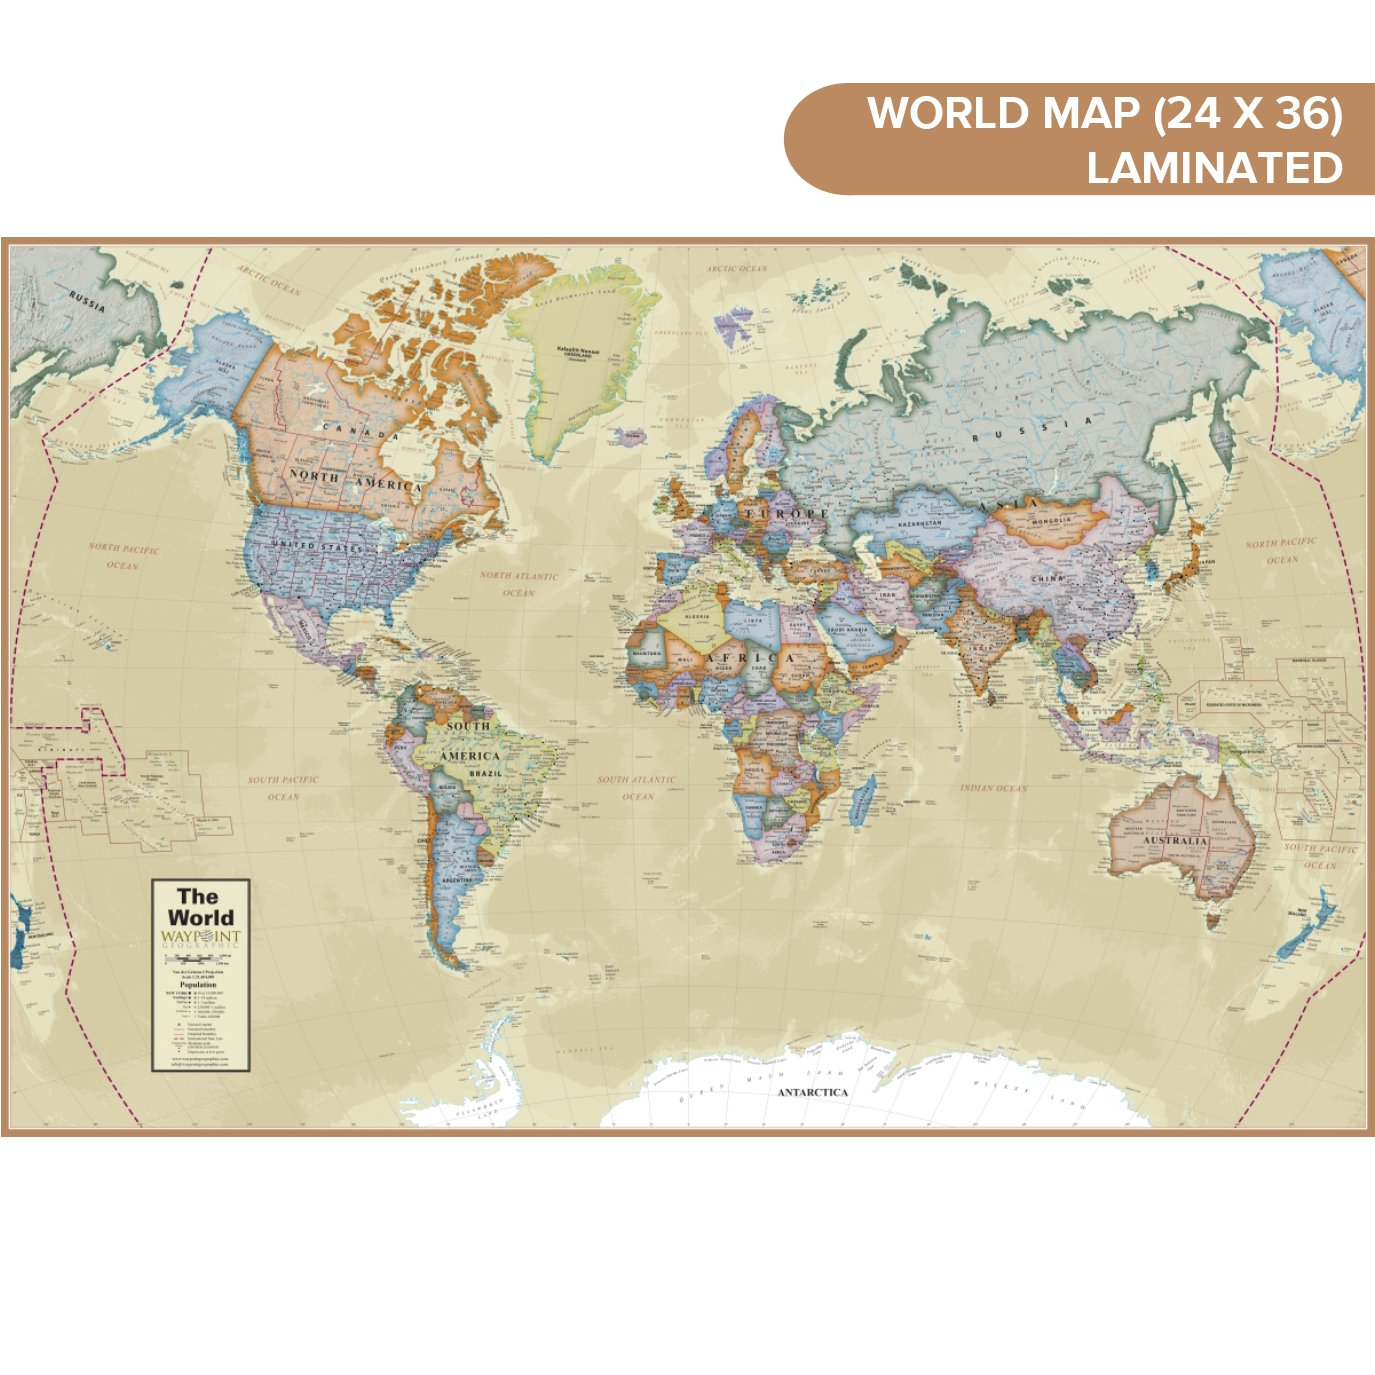 Amazon waypoint geographic classic ocean world wall map 24 x amazon waypoint geographic classic ocean world wall map 24 x 36 current up to date 1000s of named locations points of interest rolled gumiabroncs Gallery